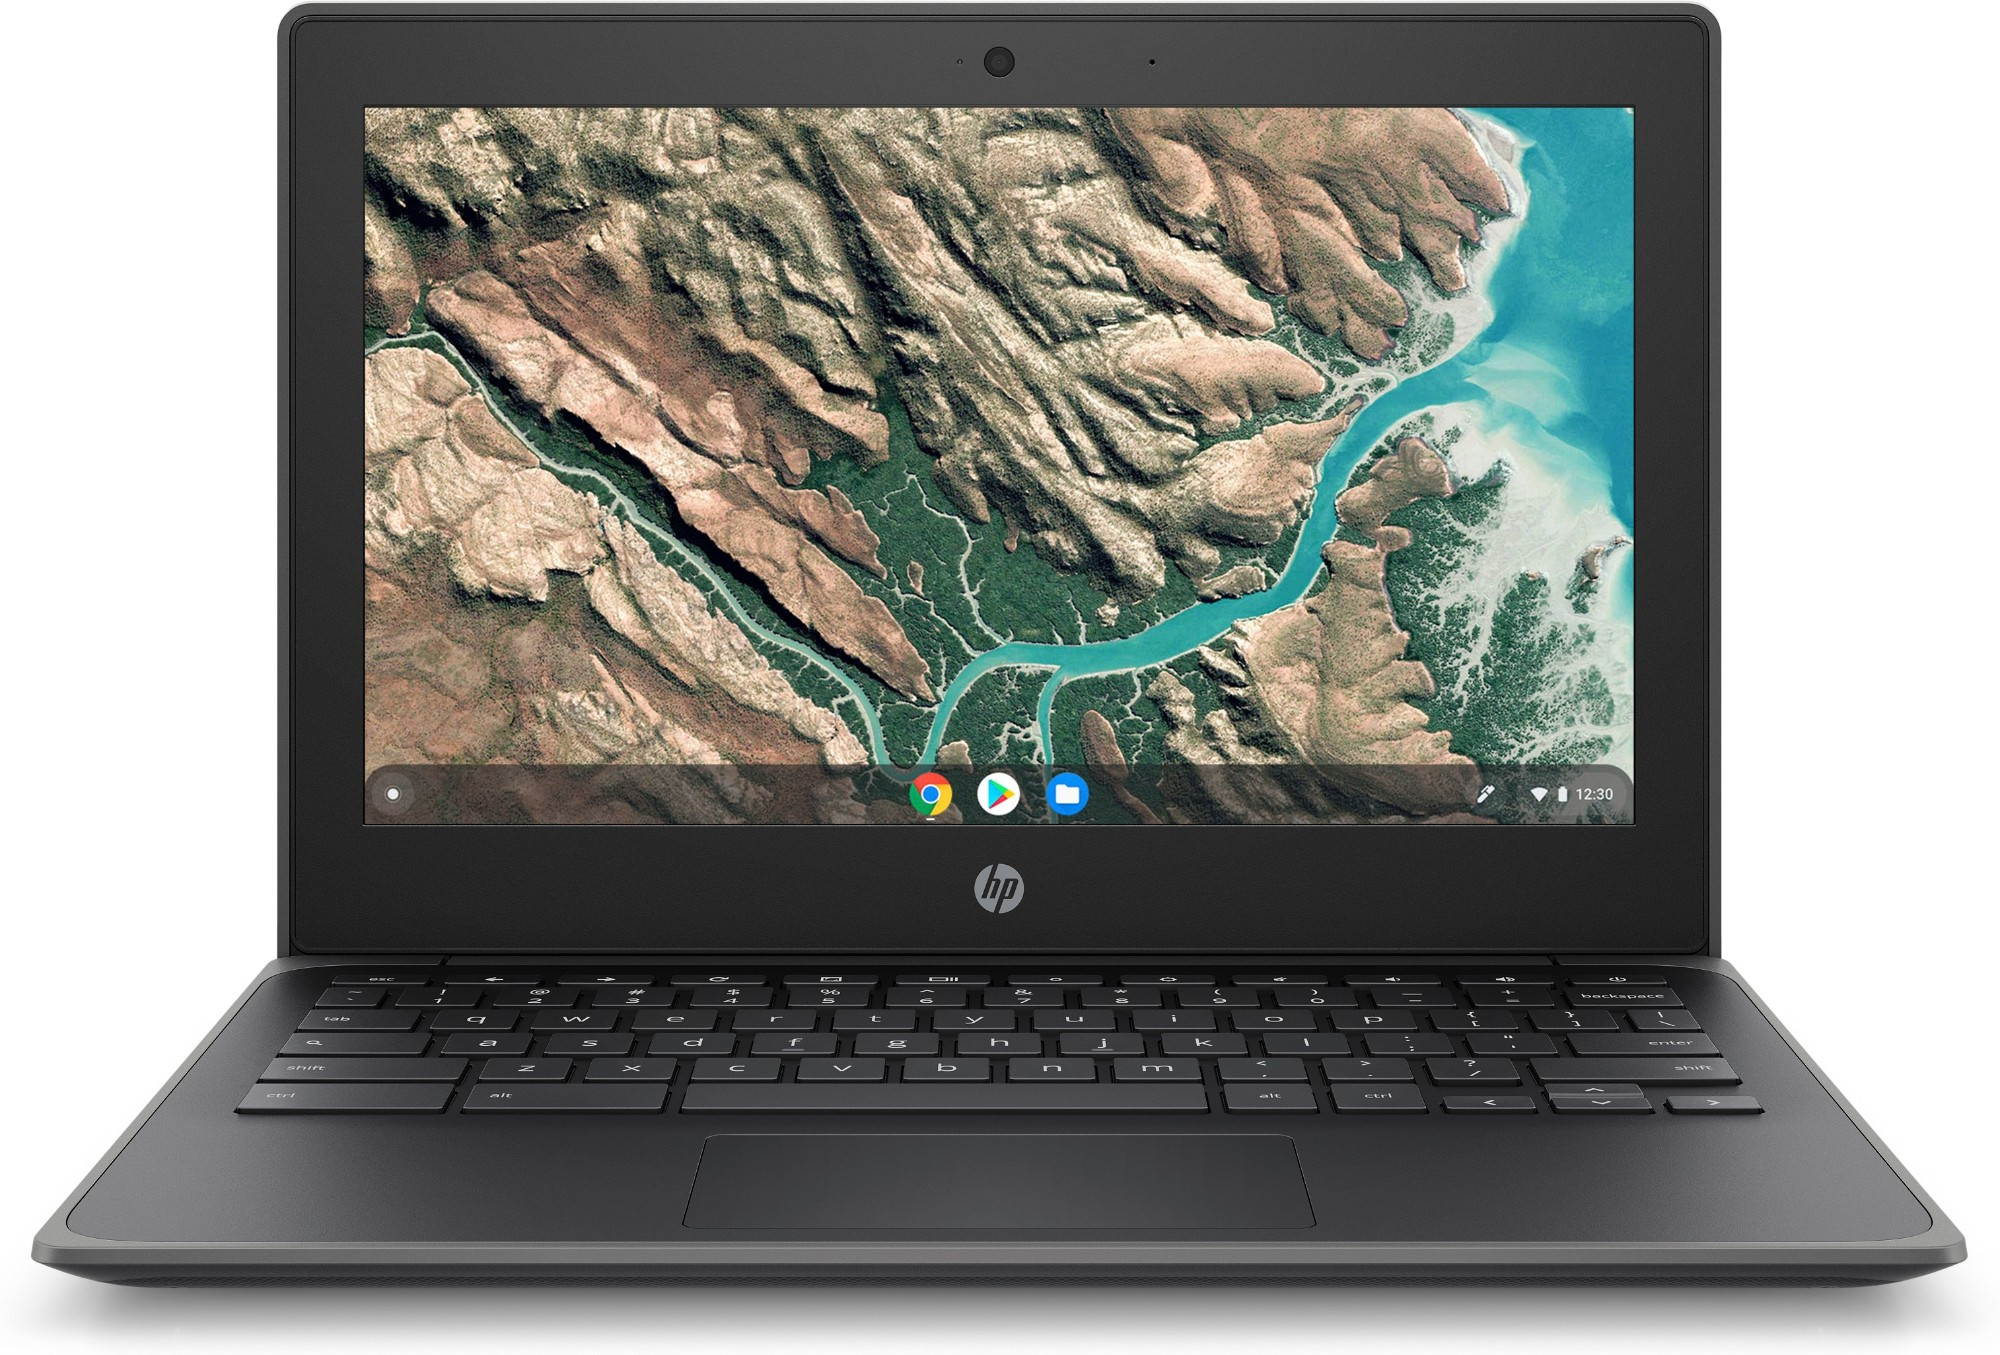 HP Chromebook 11 G8 EE Gray 29.5 cm 11.6